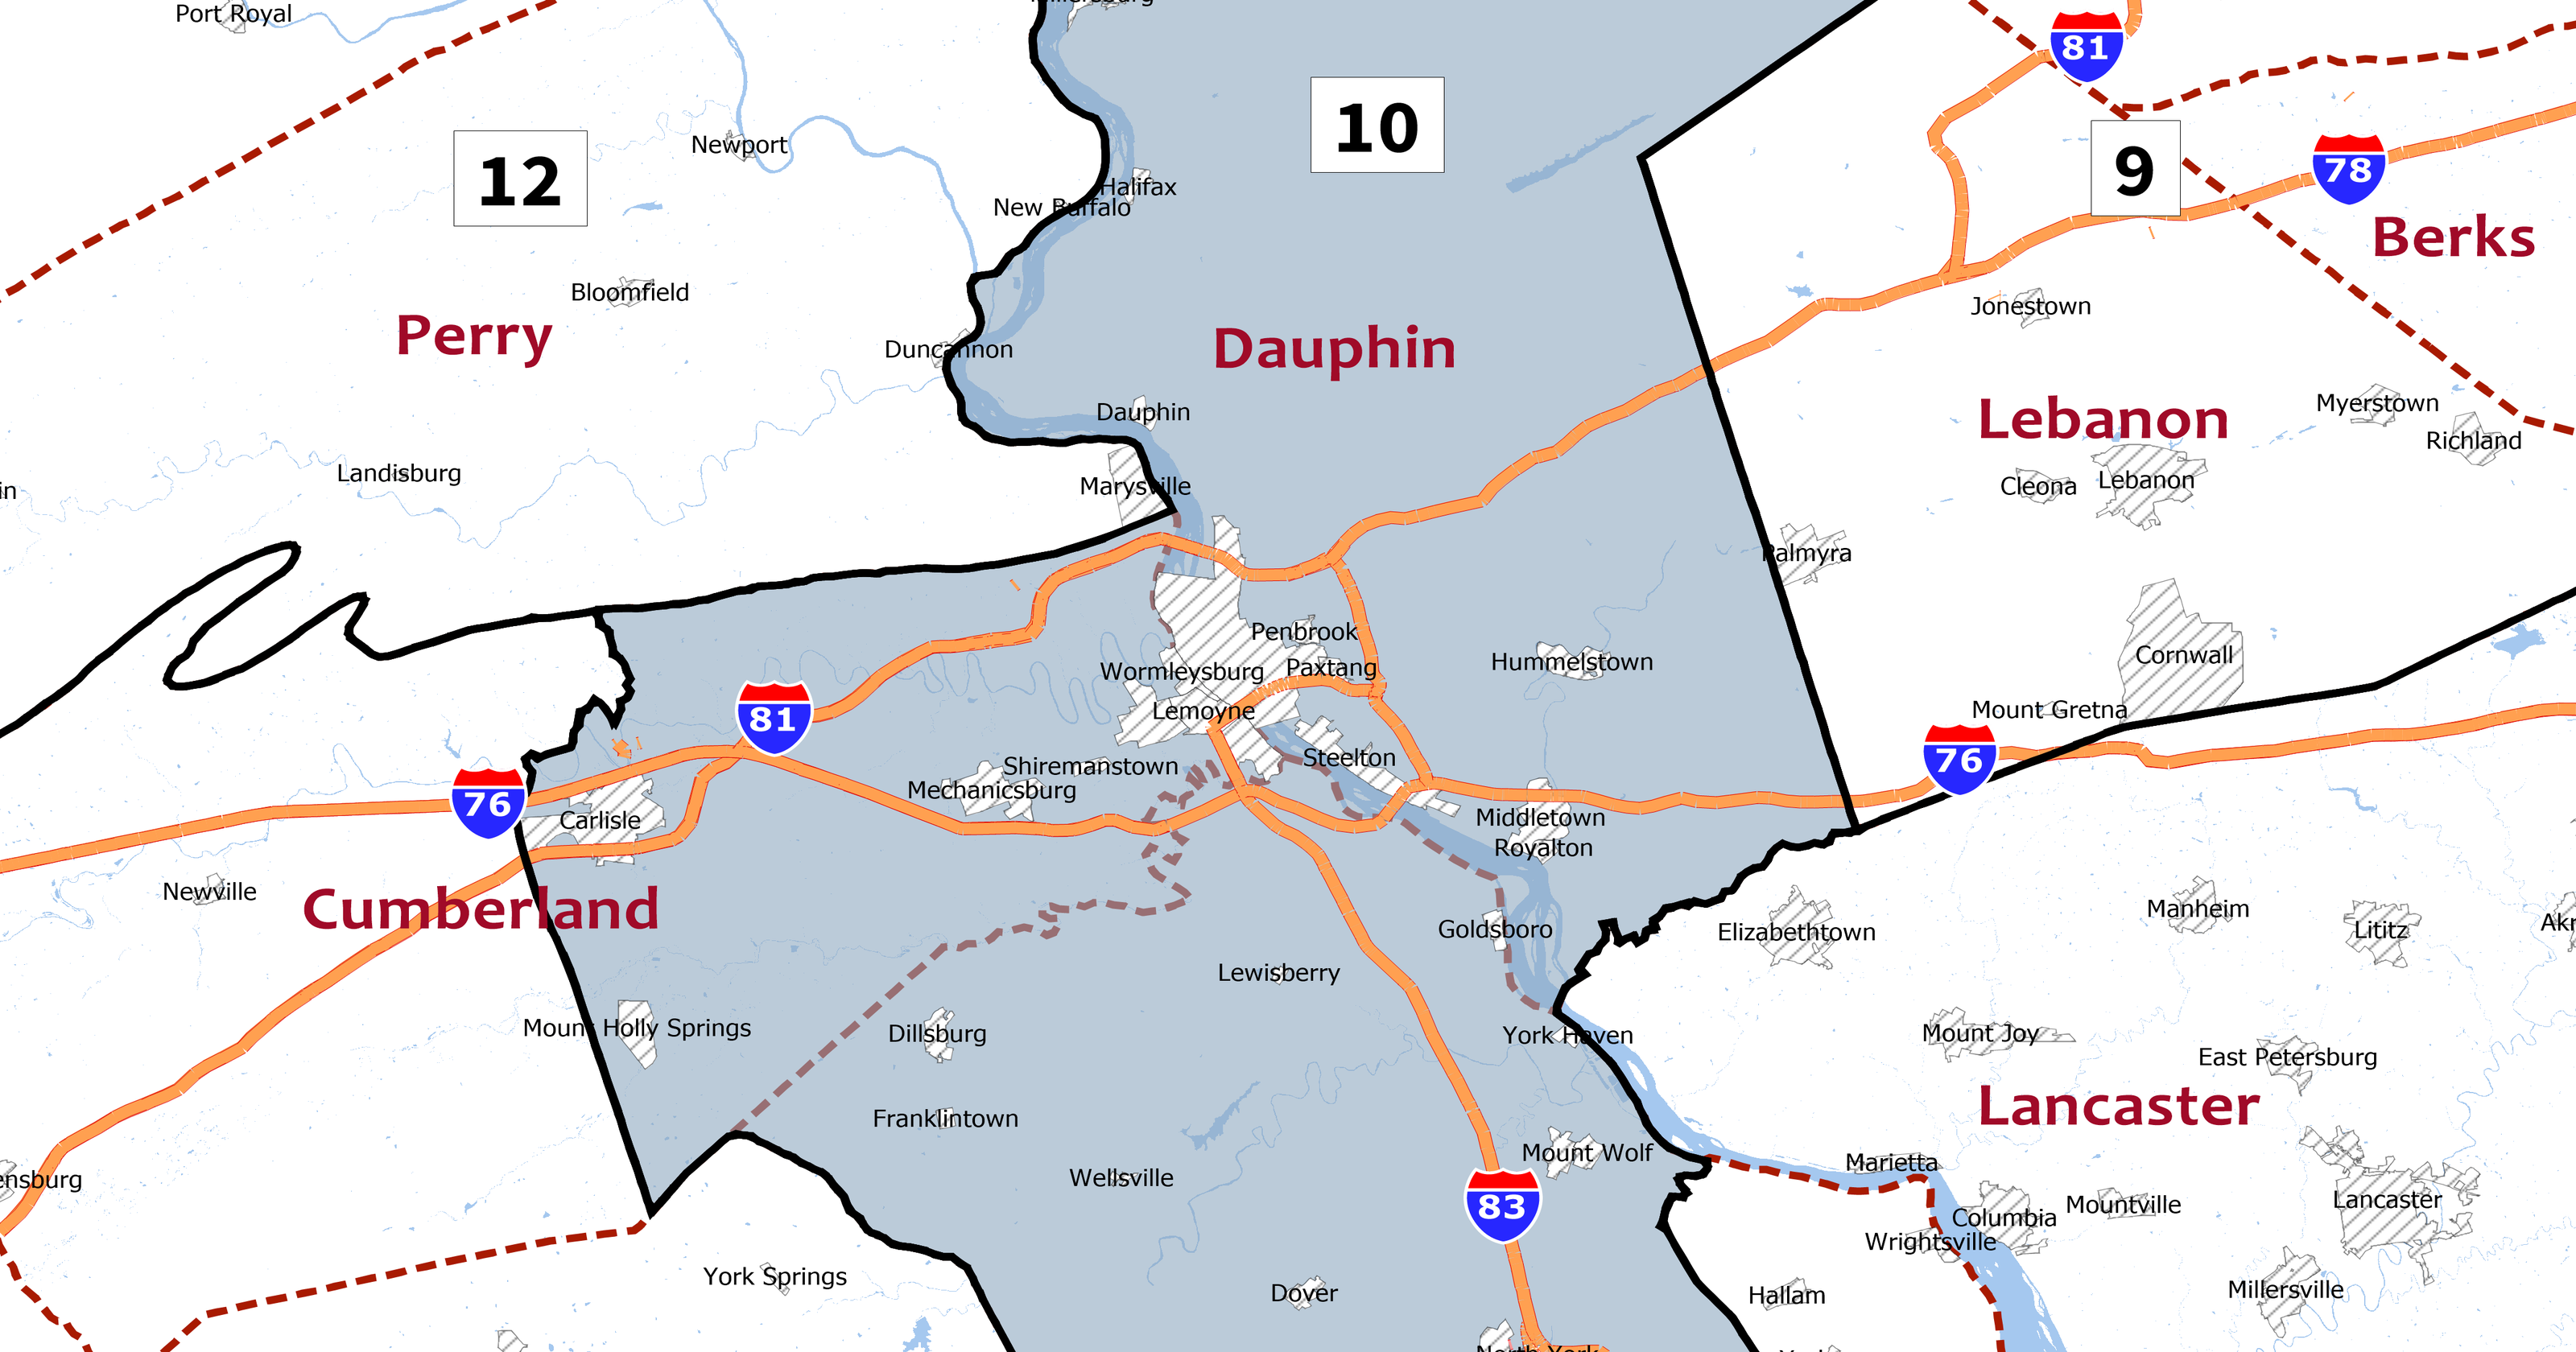 Map Of New York 19th Congressional District.Pa 2018 Election Who Is Running For The 10th Congressional District